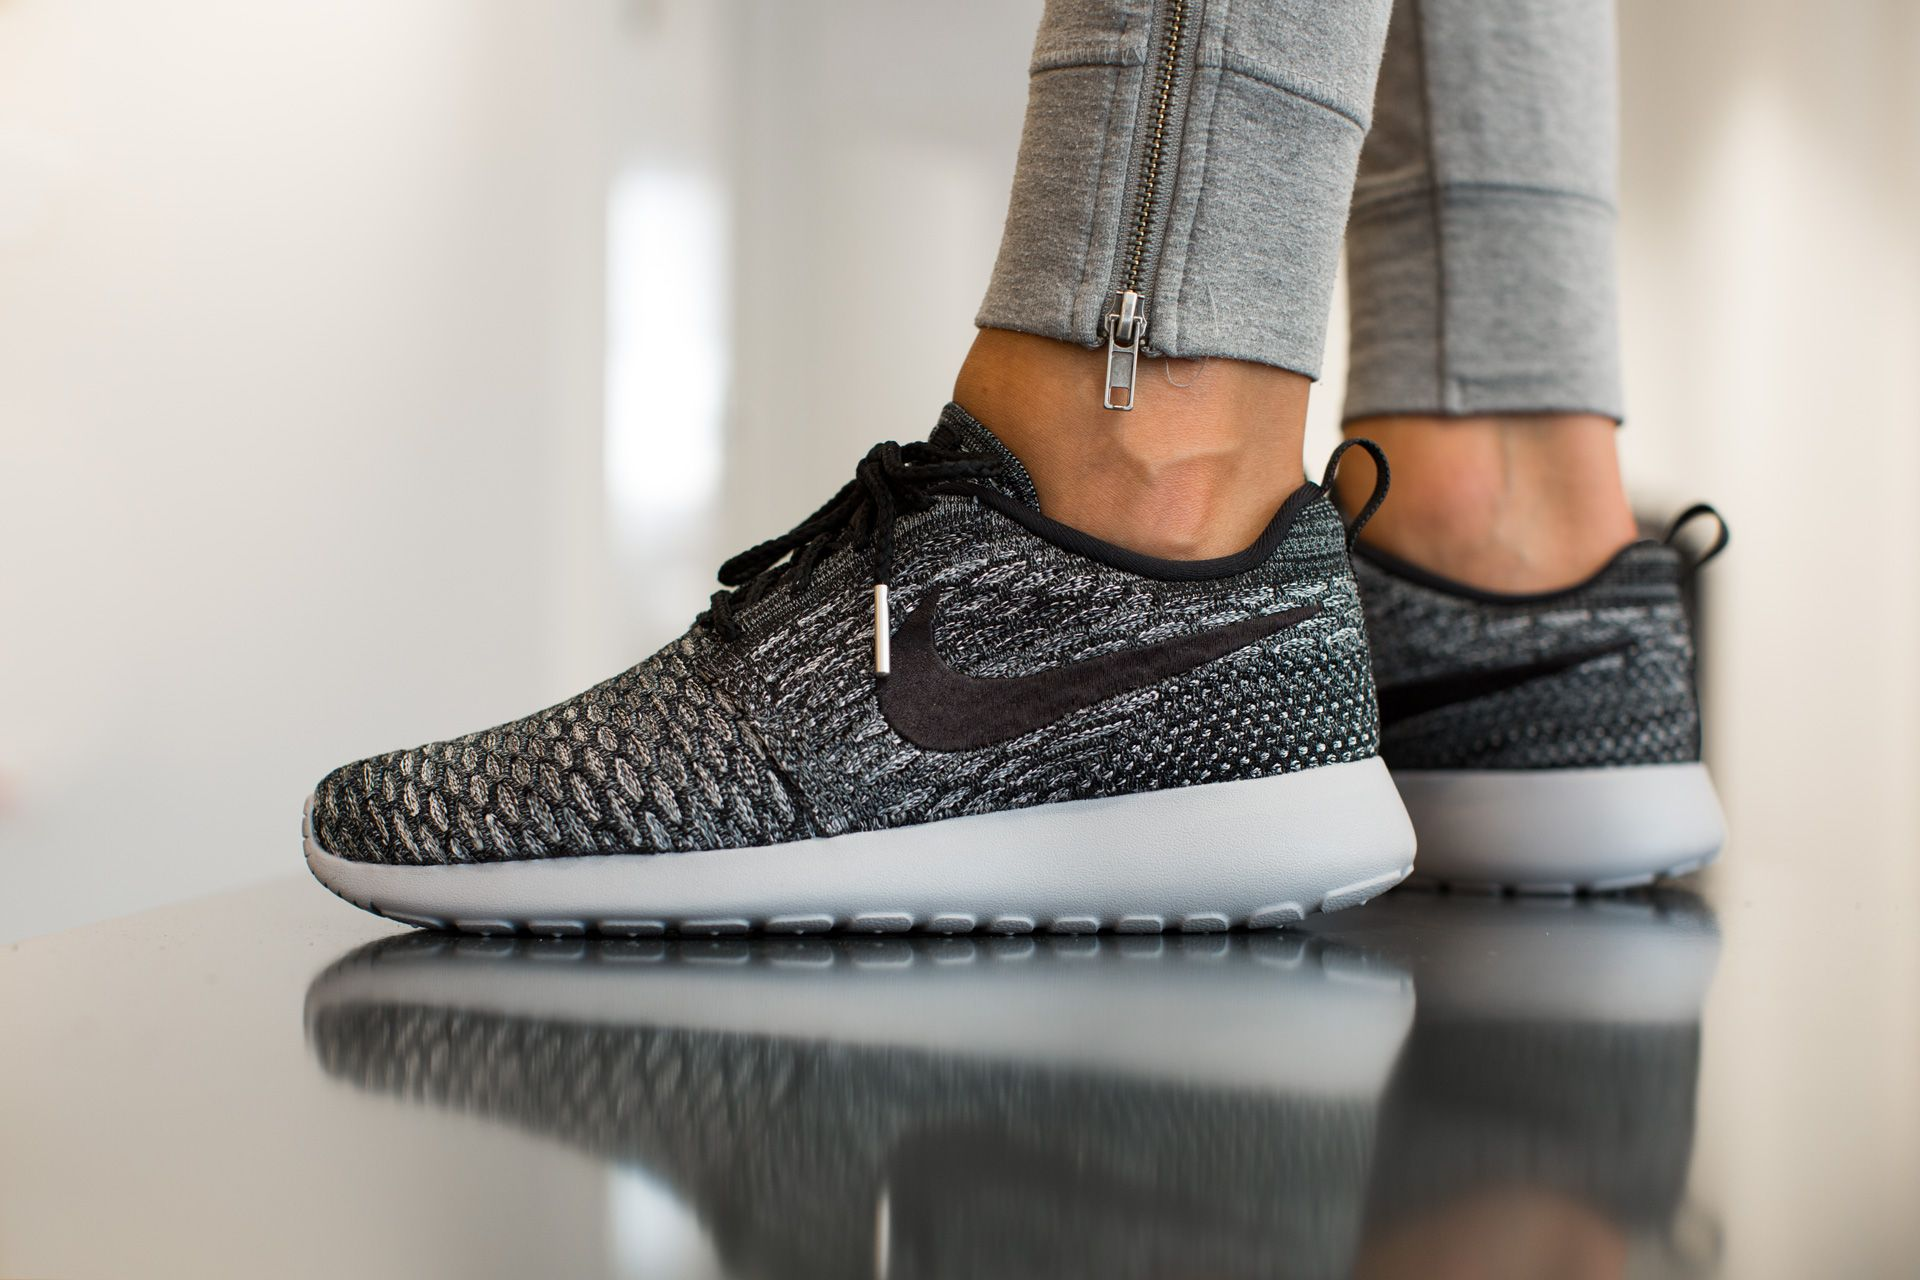 029a4e2207be NIKE WMNS ROSHE ONE FLYKNIT COOL GREY BLACK-WLF GREY-WHITE available at  www.tint-footwear.com nike-wmns-roshe-run-flyknit-007 nike roshe one  rosherun ...